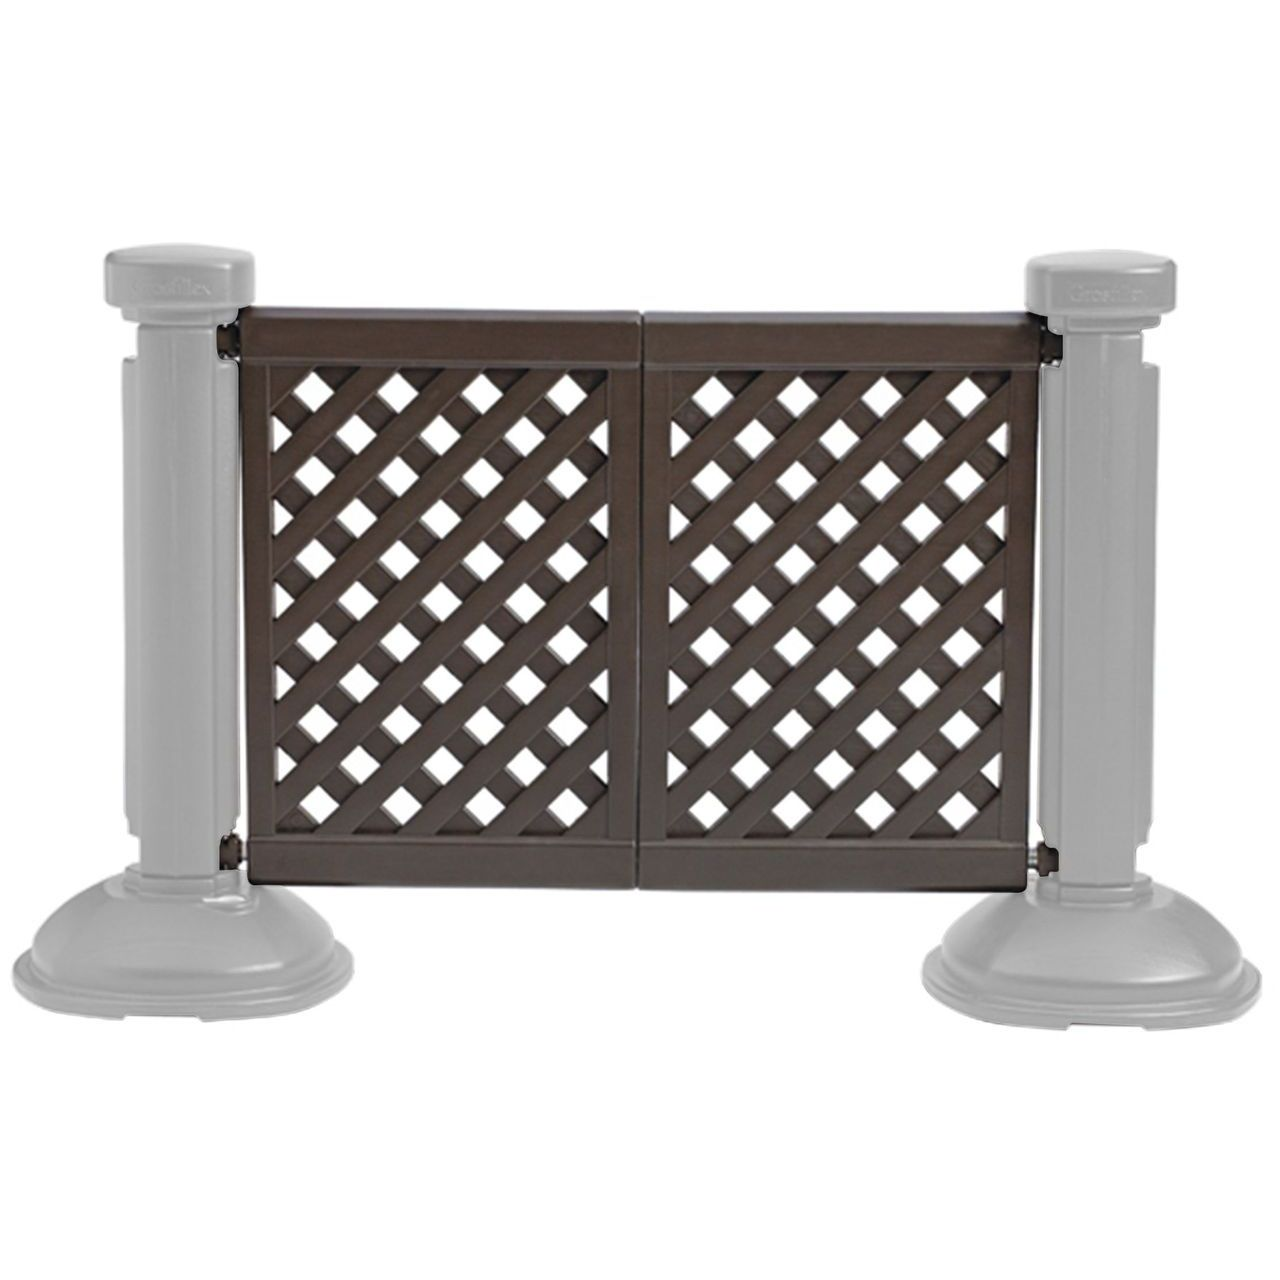 Grosfillex 2-Panel Section of Portable Fencing in Brown